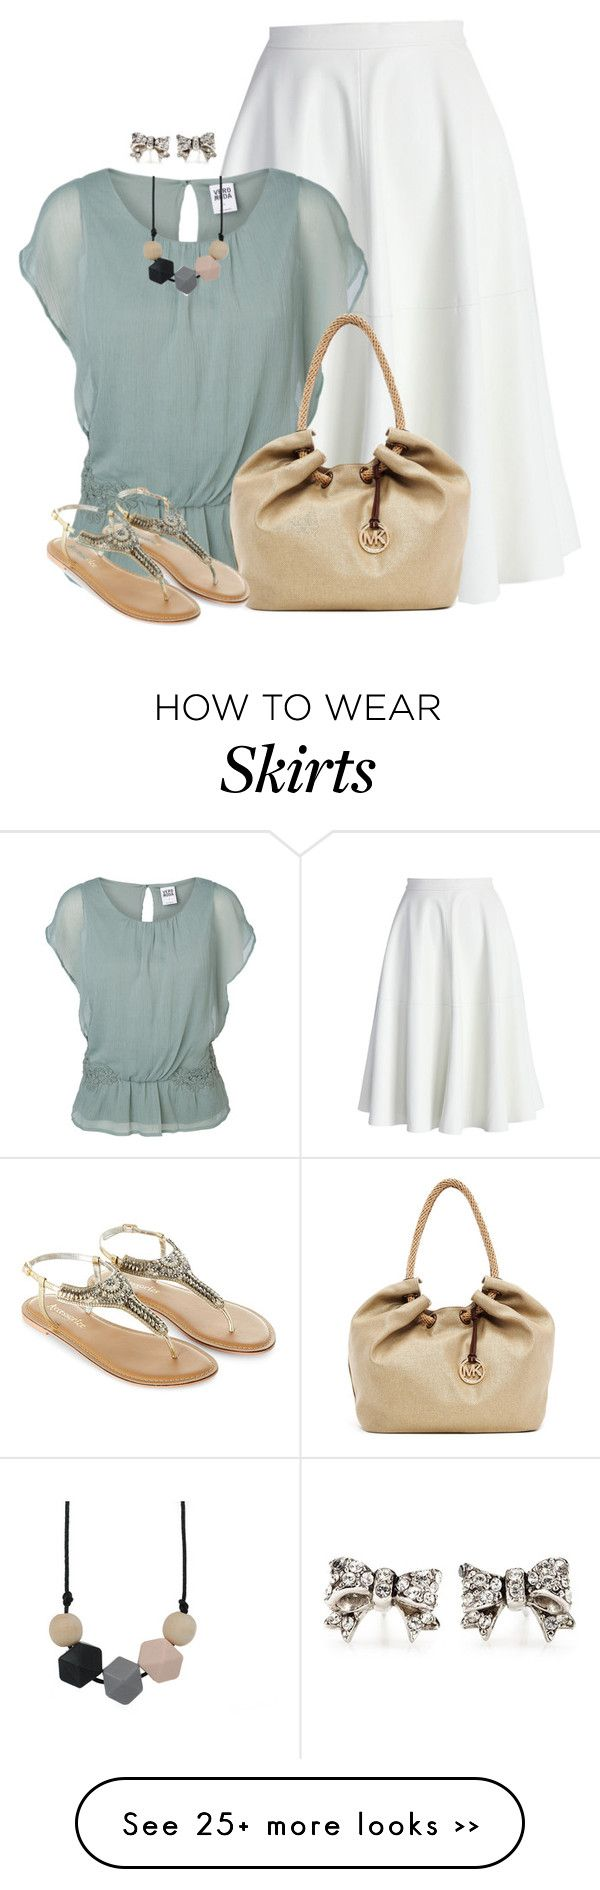 """Simple Flow & Sparkle"" by angelysty on Polyvore"